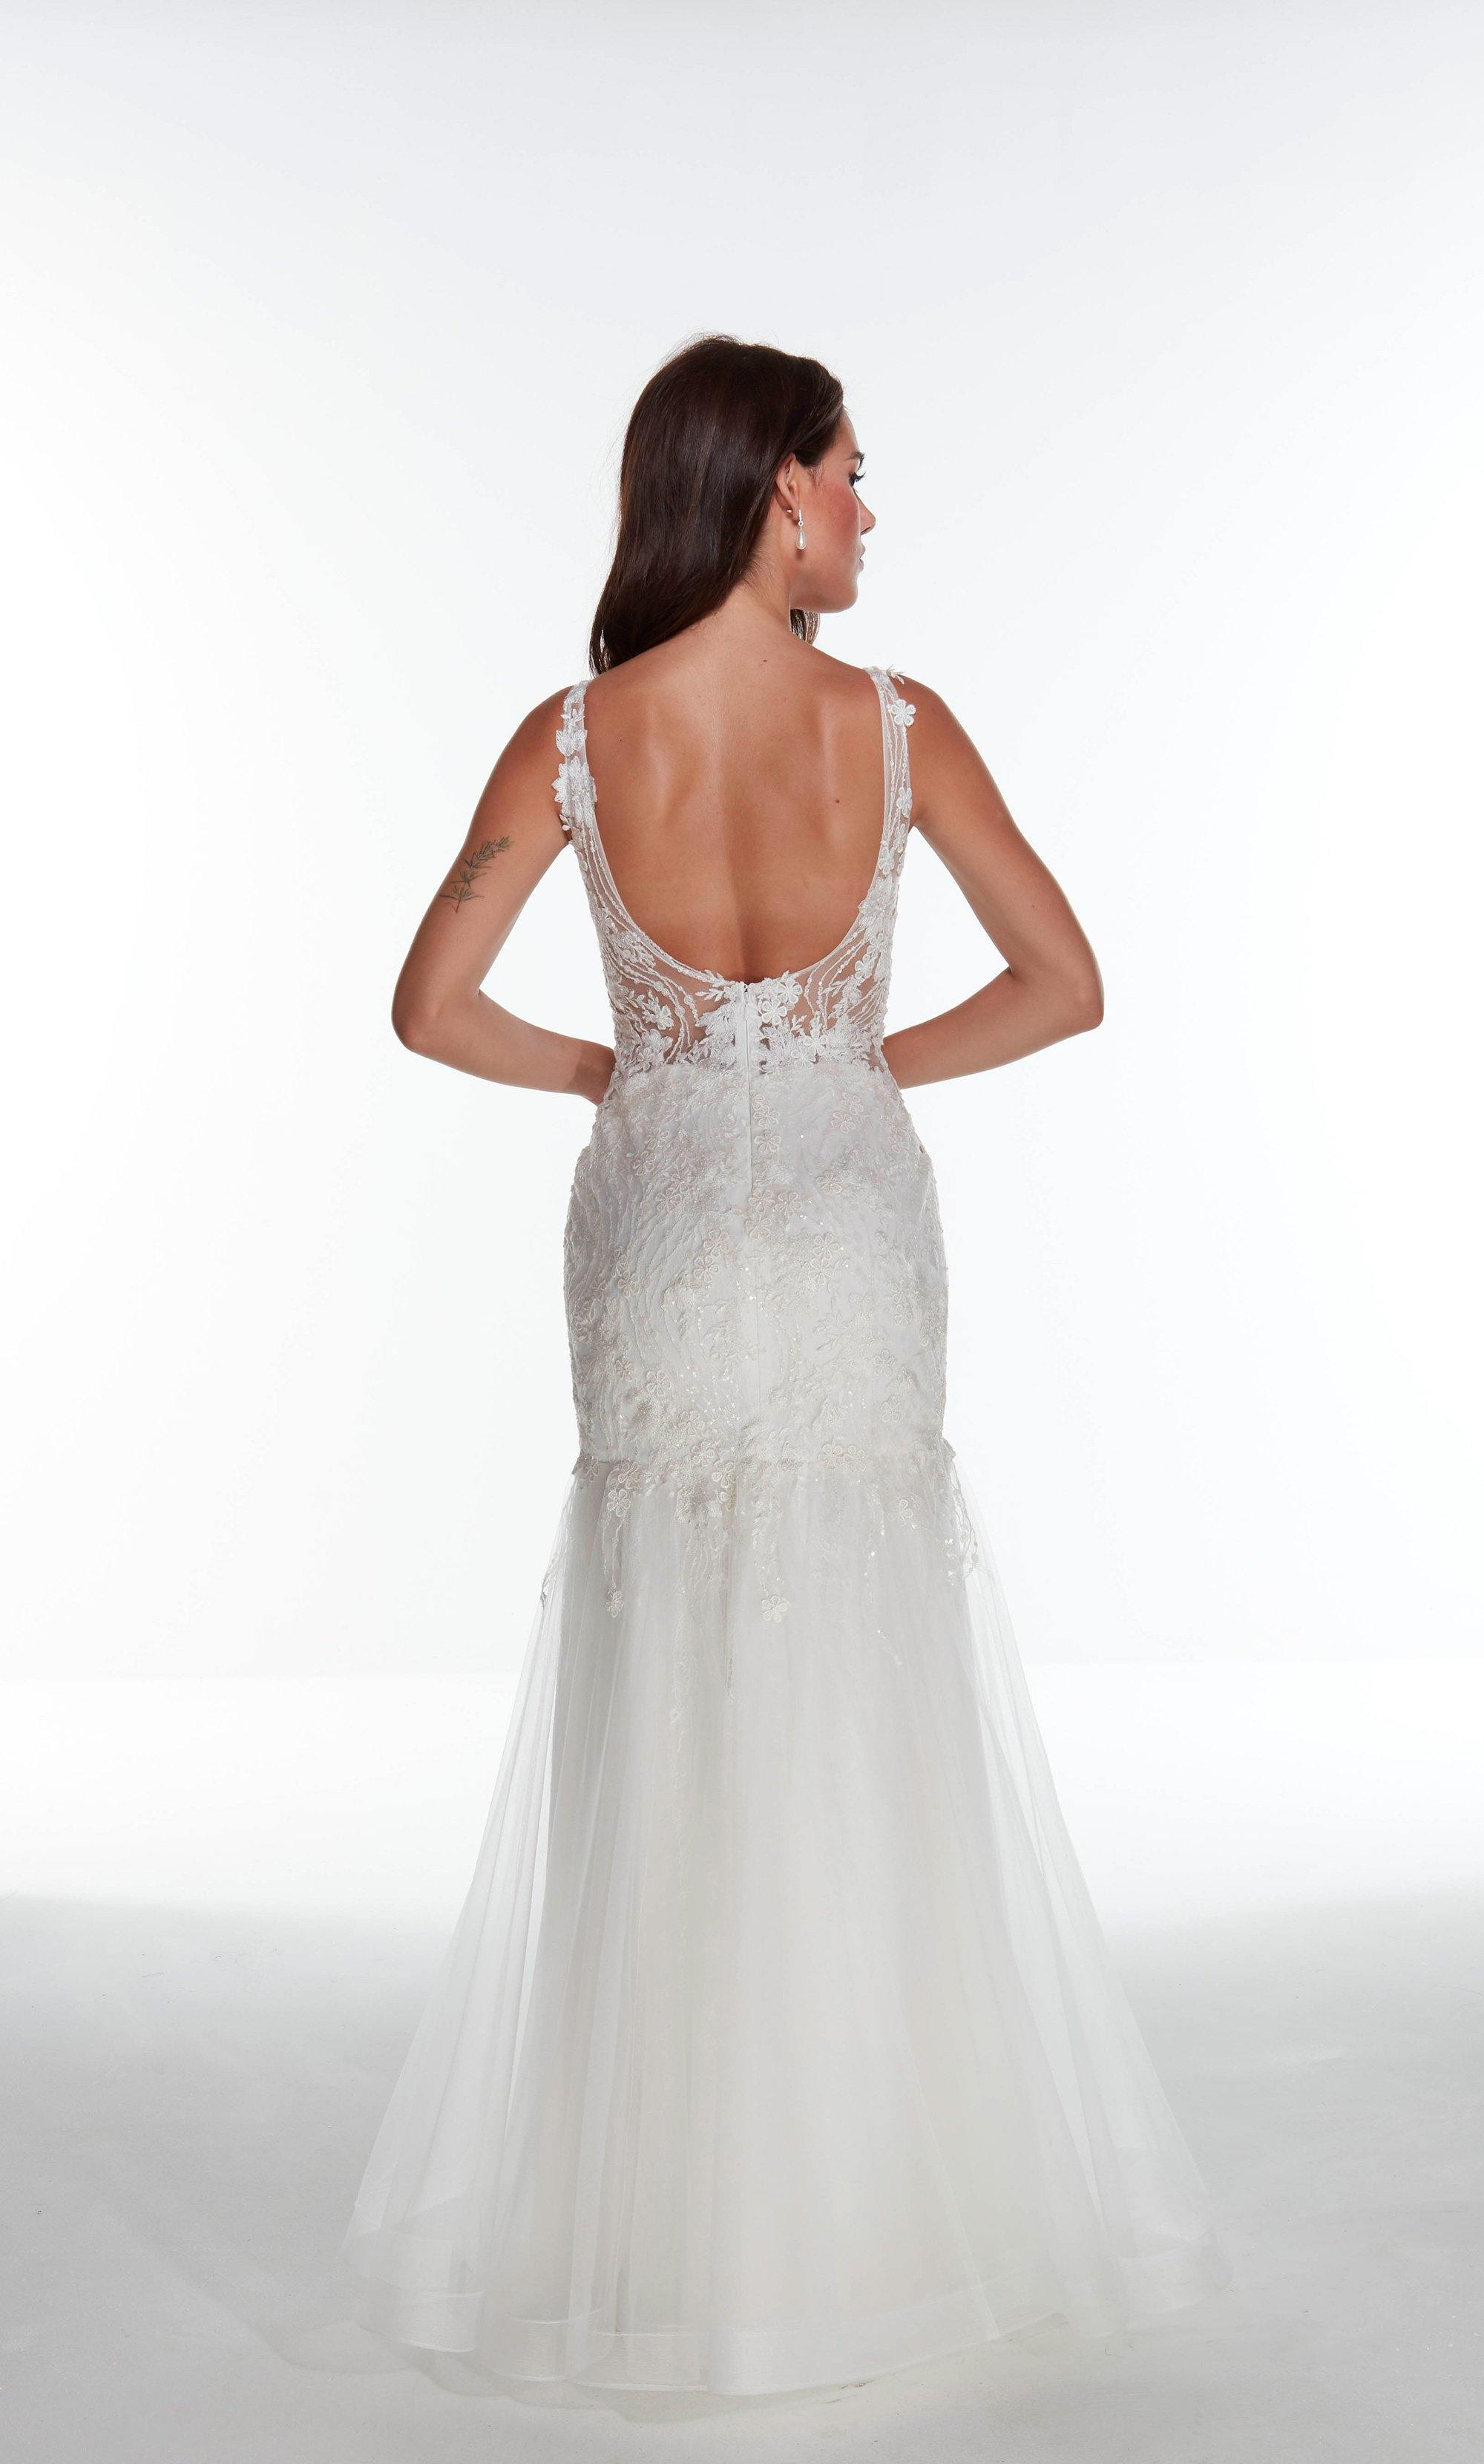 Solid Ivory tulle-lace mermaid wedding dress with an illusion neckline